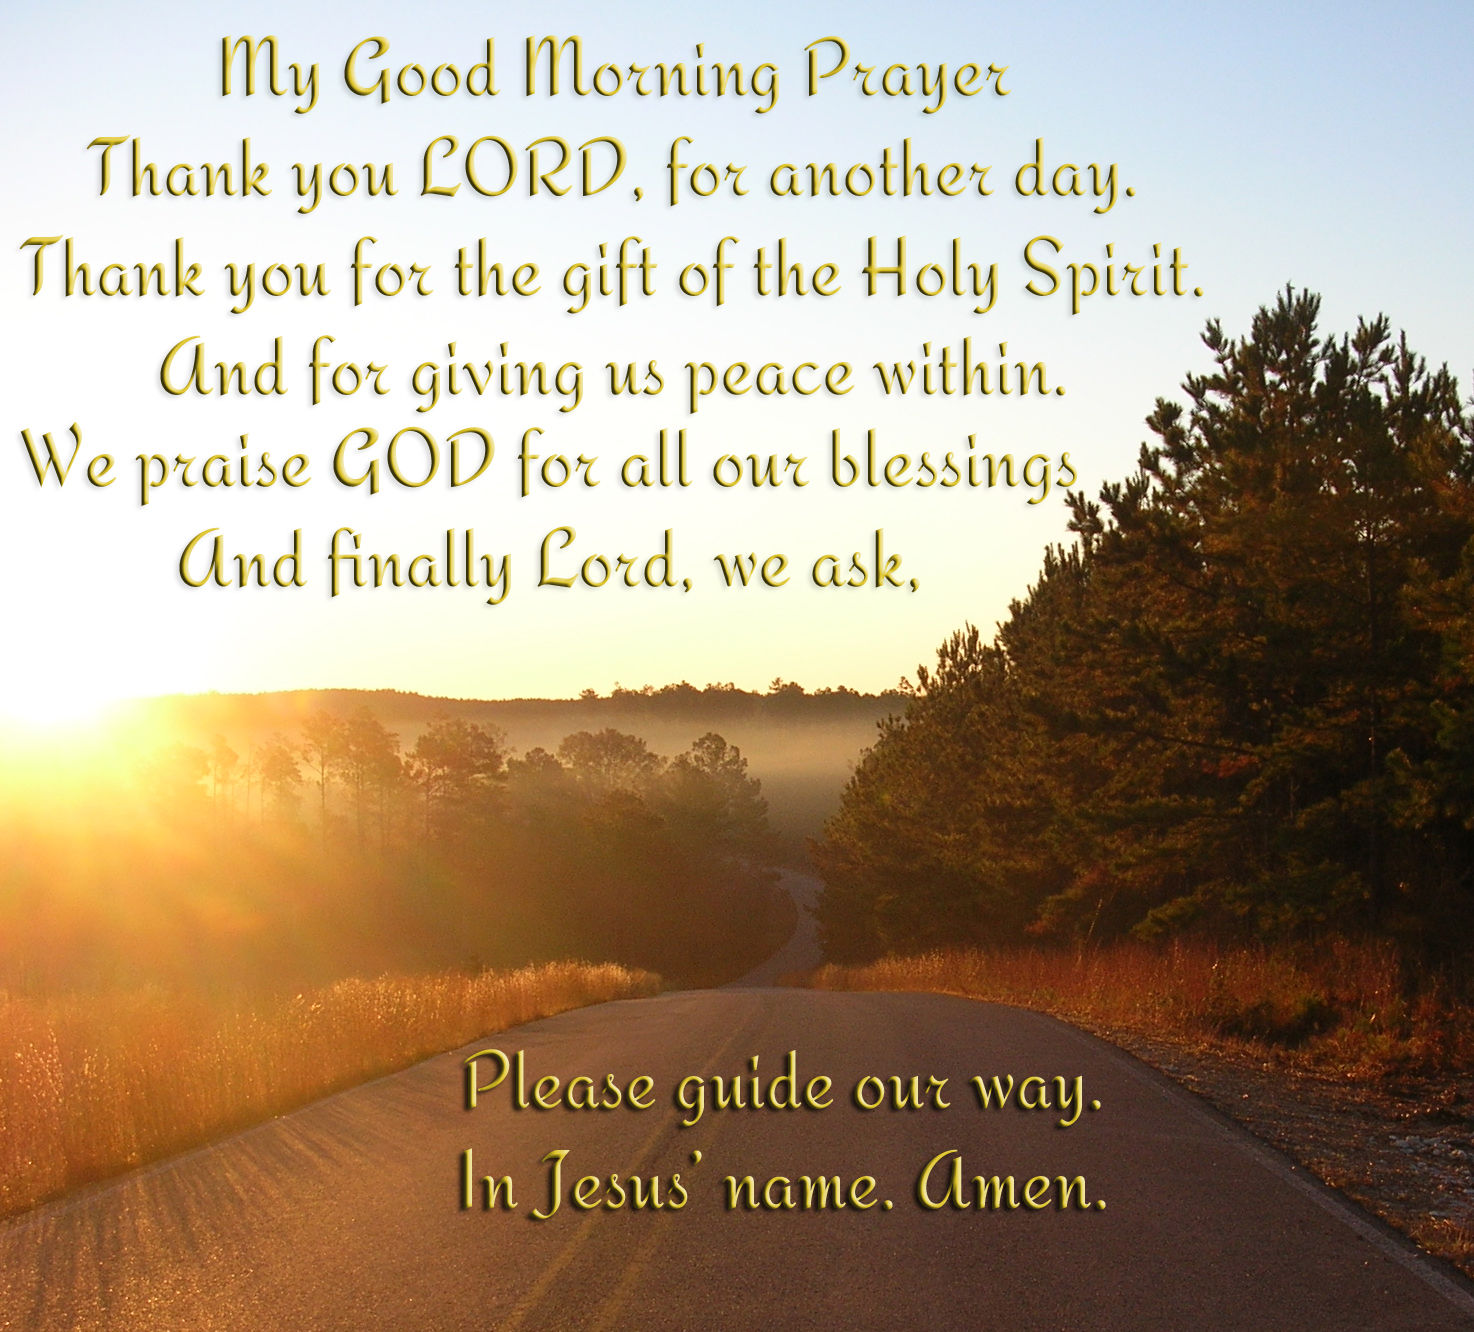 Good Morning Christian Quotes: My Good Morning Prayer Pictures, Photos, And Images For